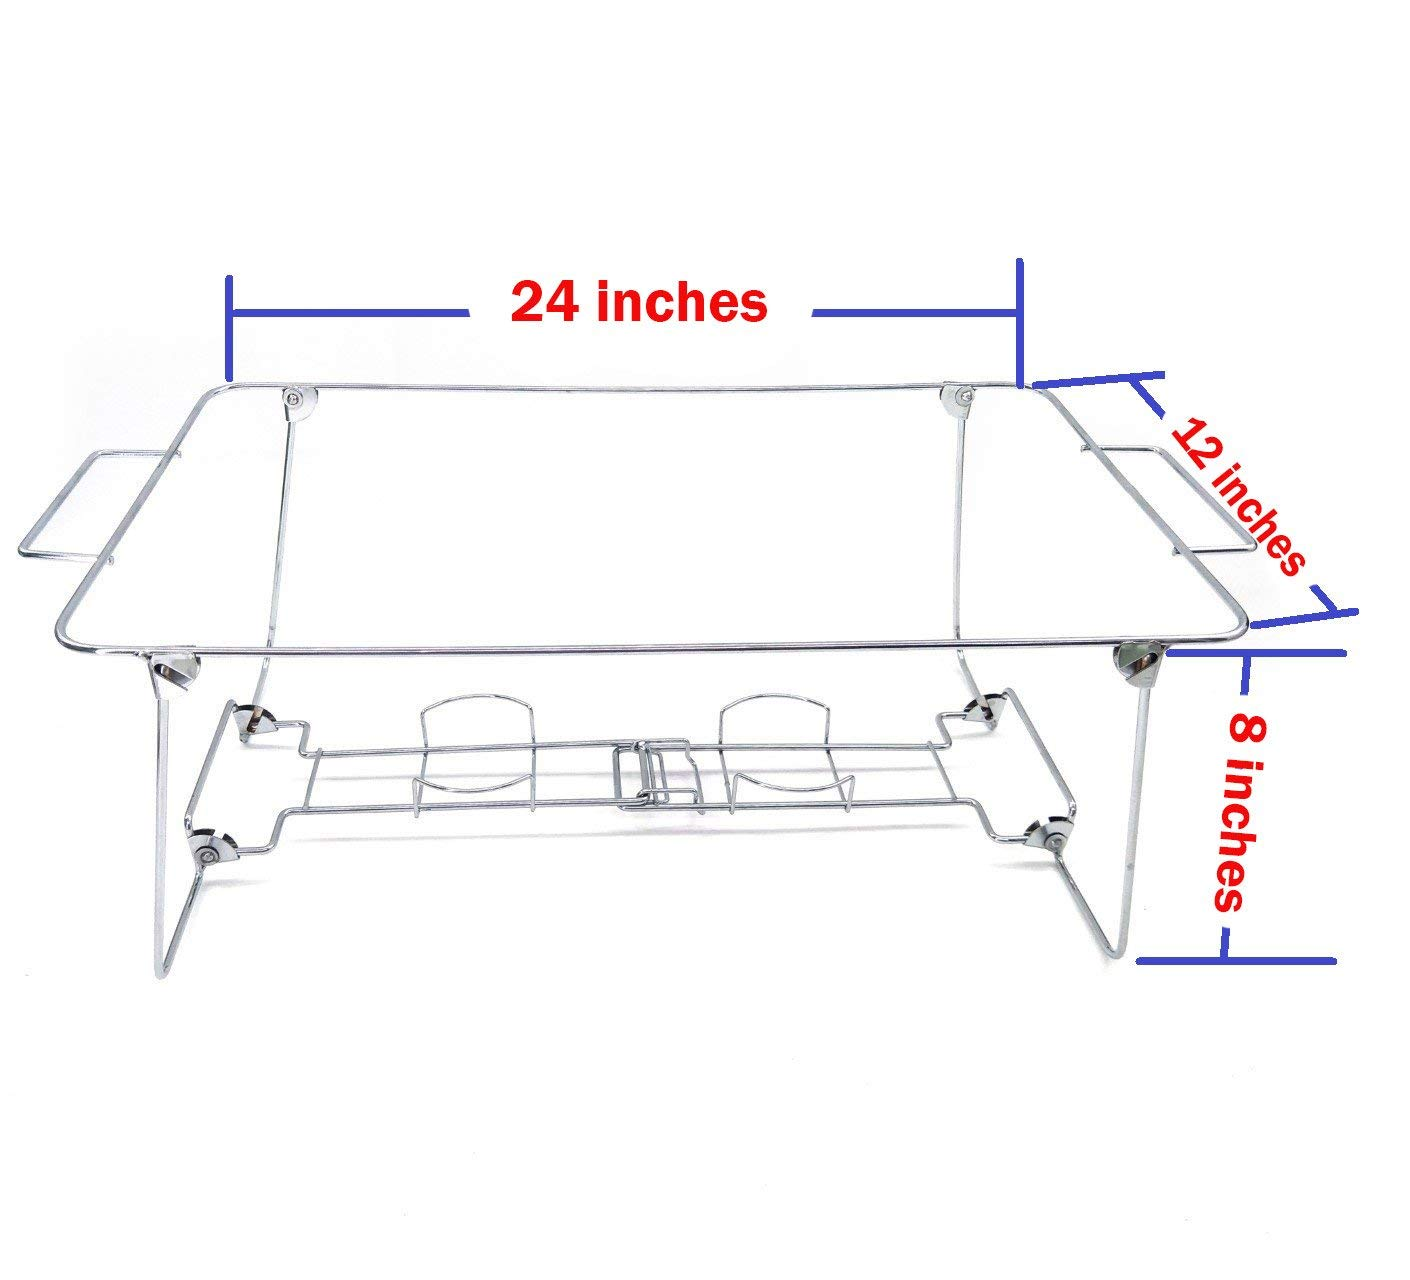 Chafing Dishes - vazlo on